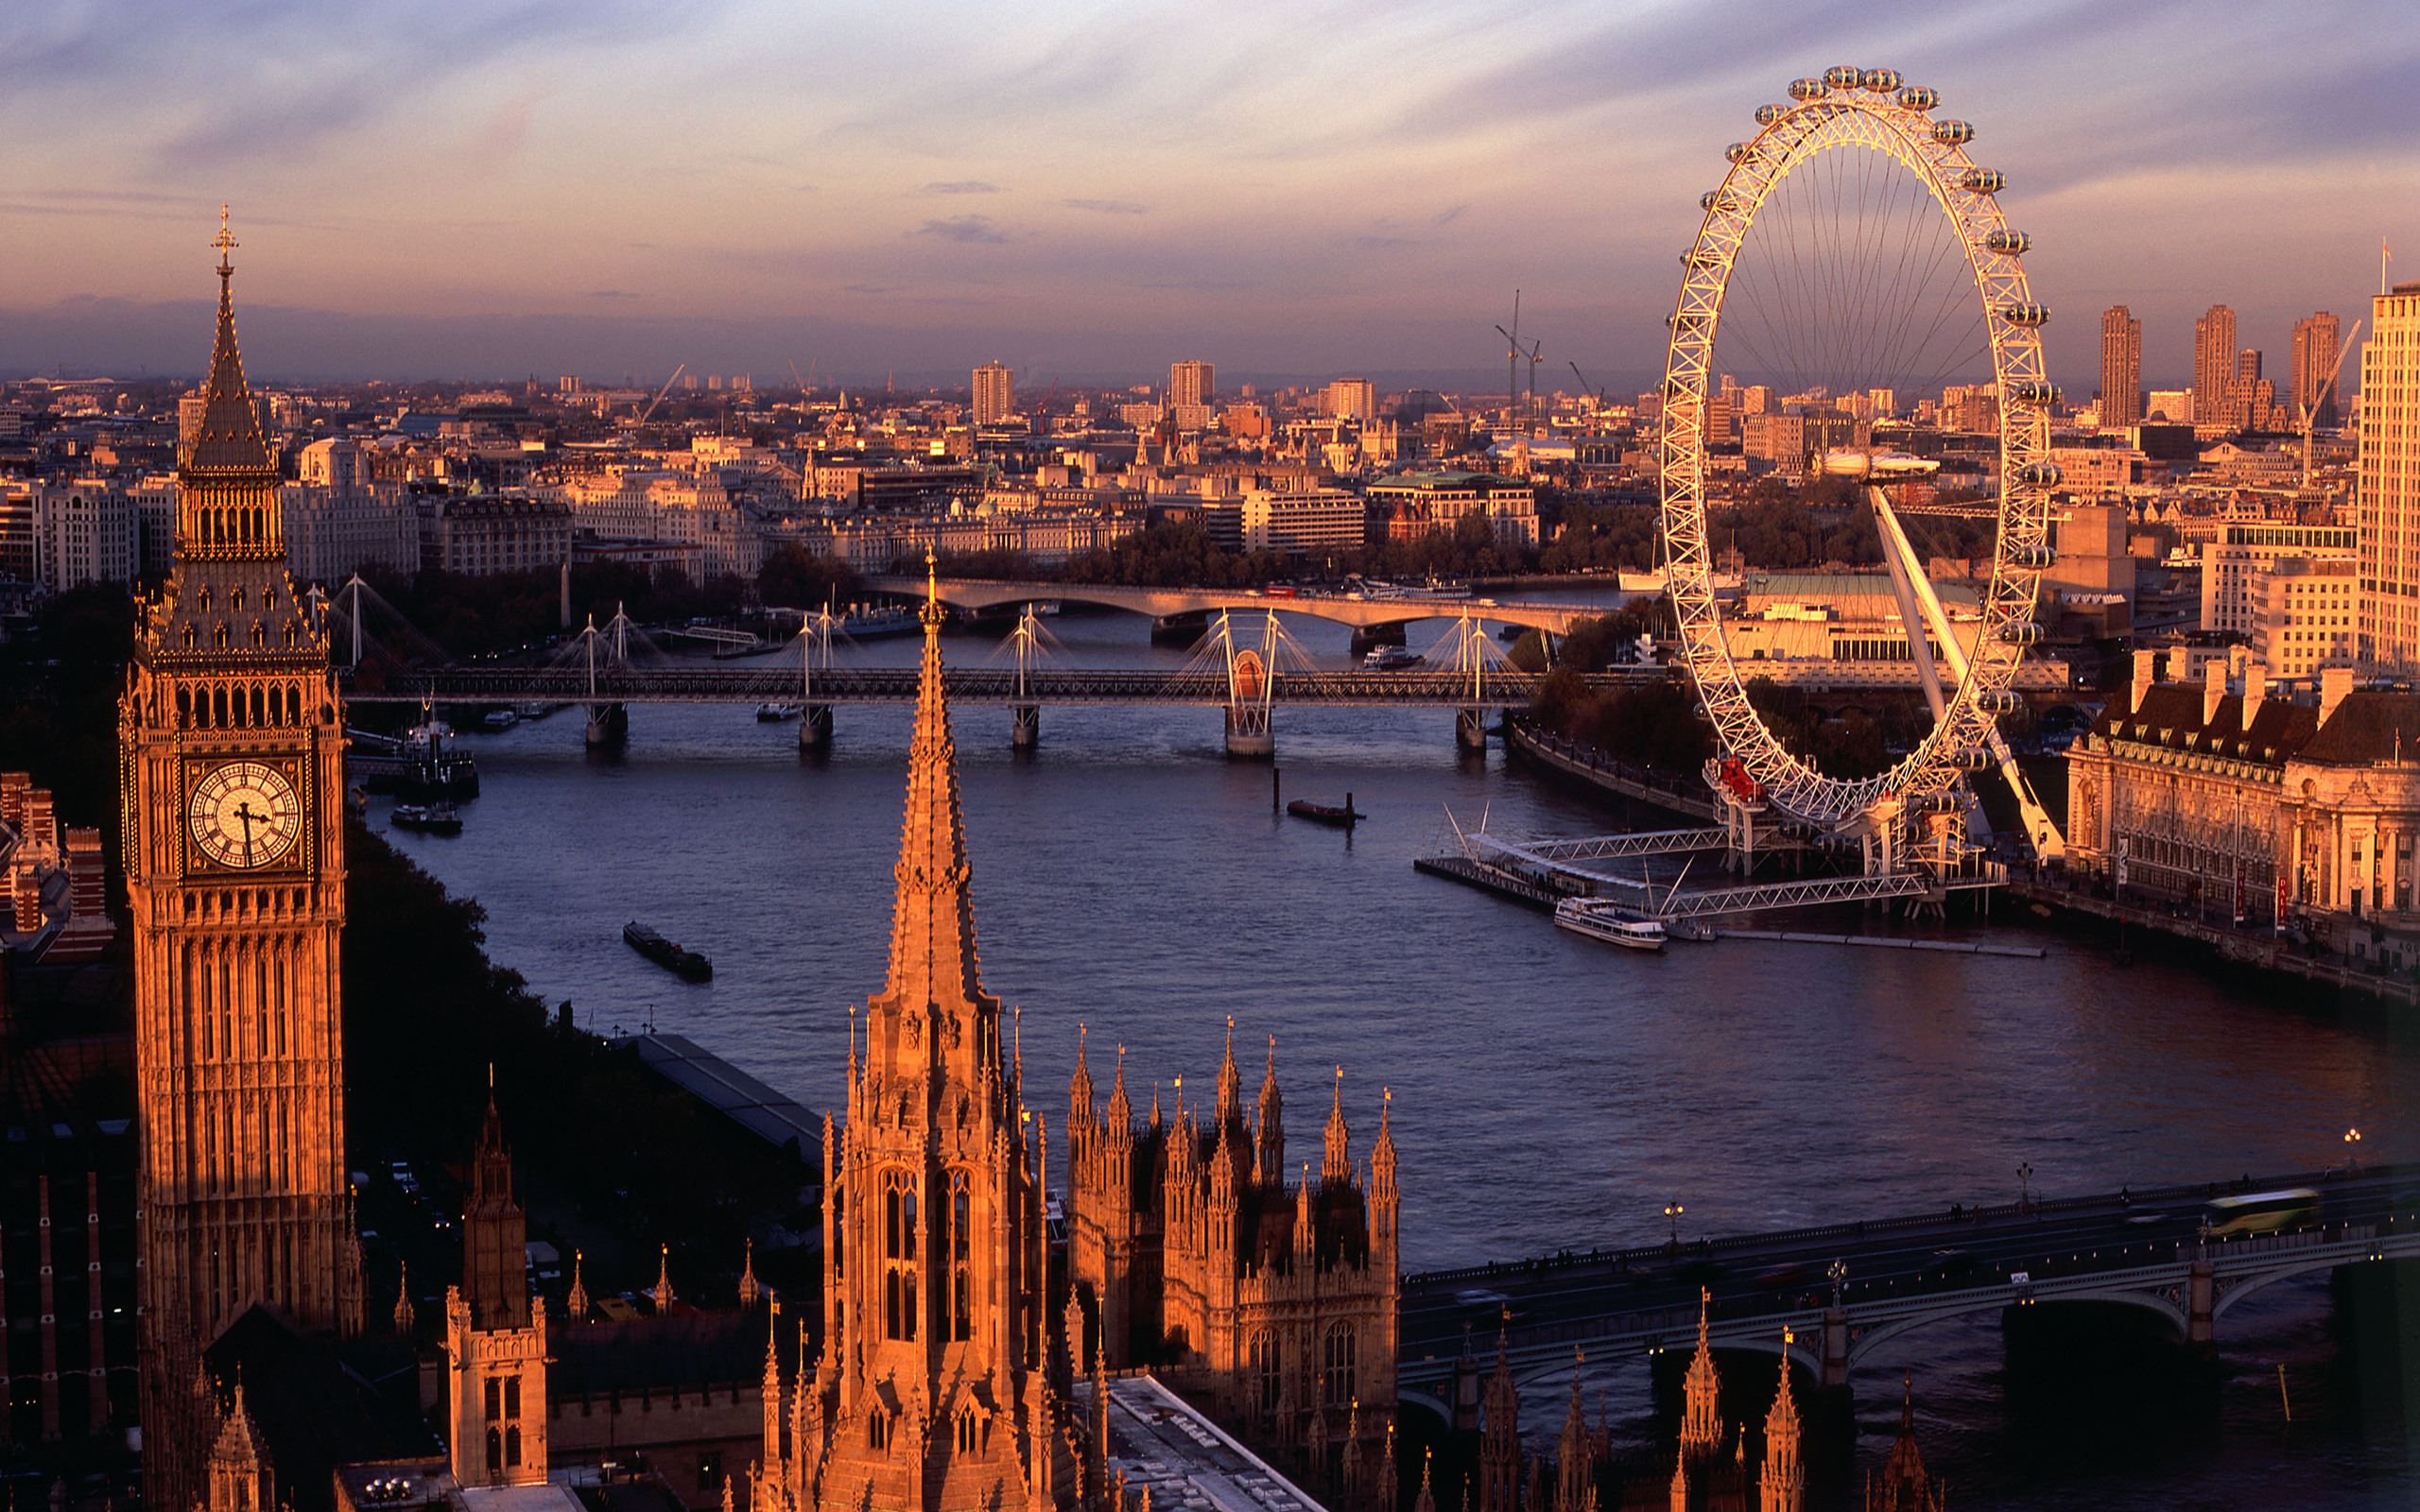 London Desktop Tumblr Wallpaper High Resolution Is Cool Wallpapers